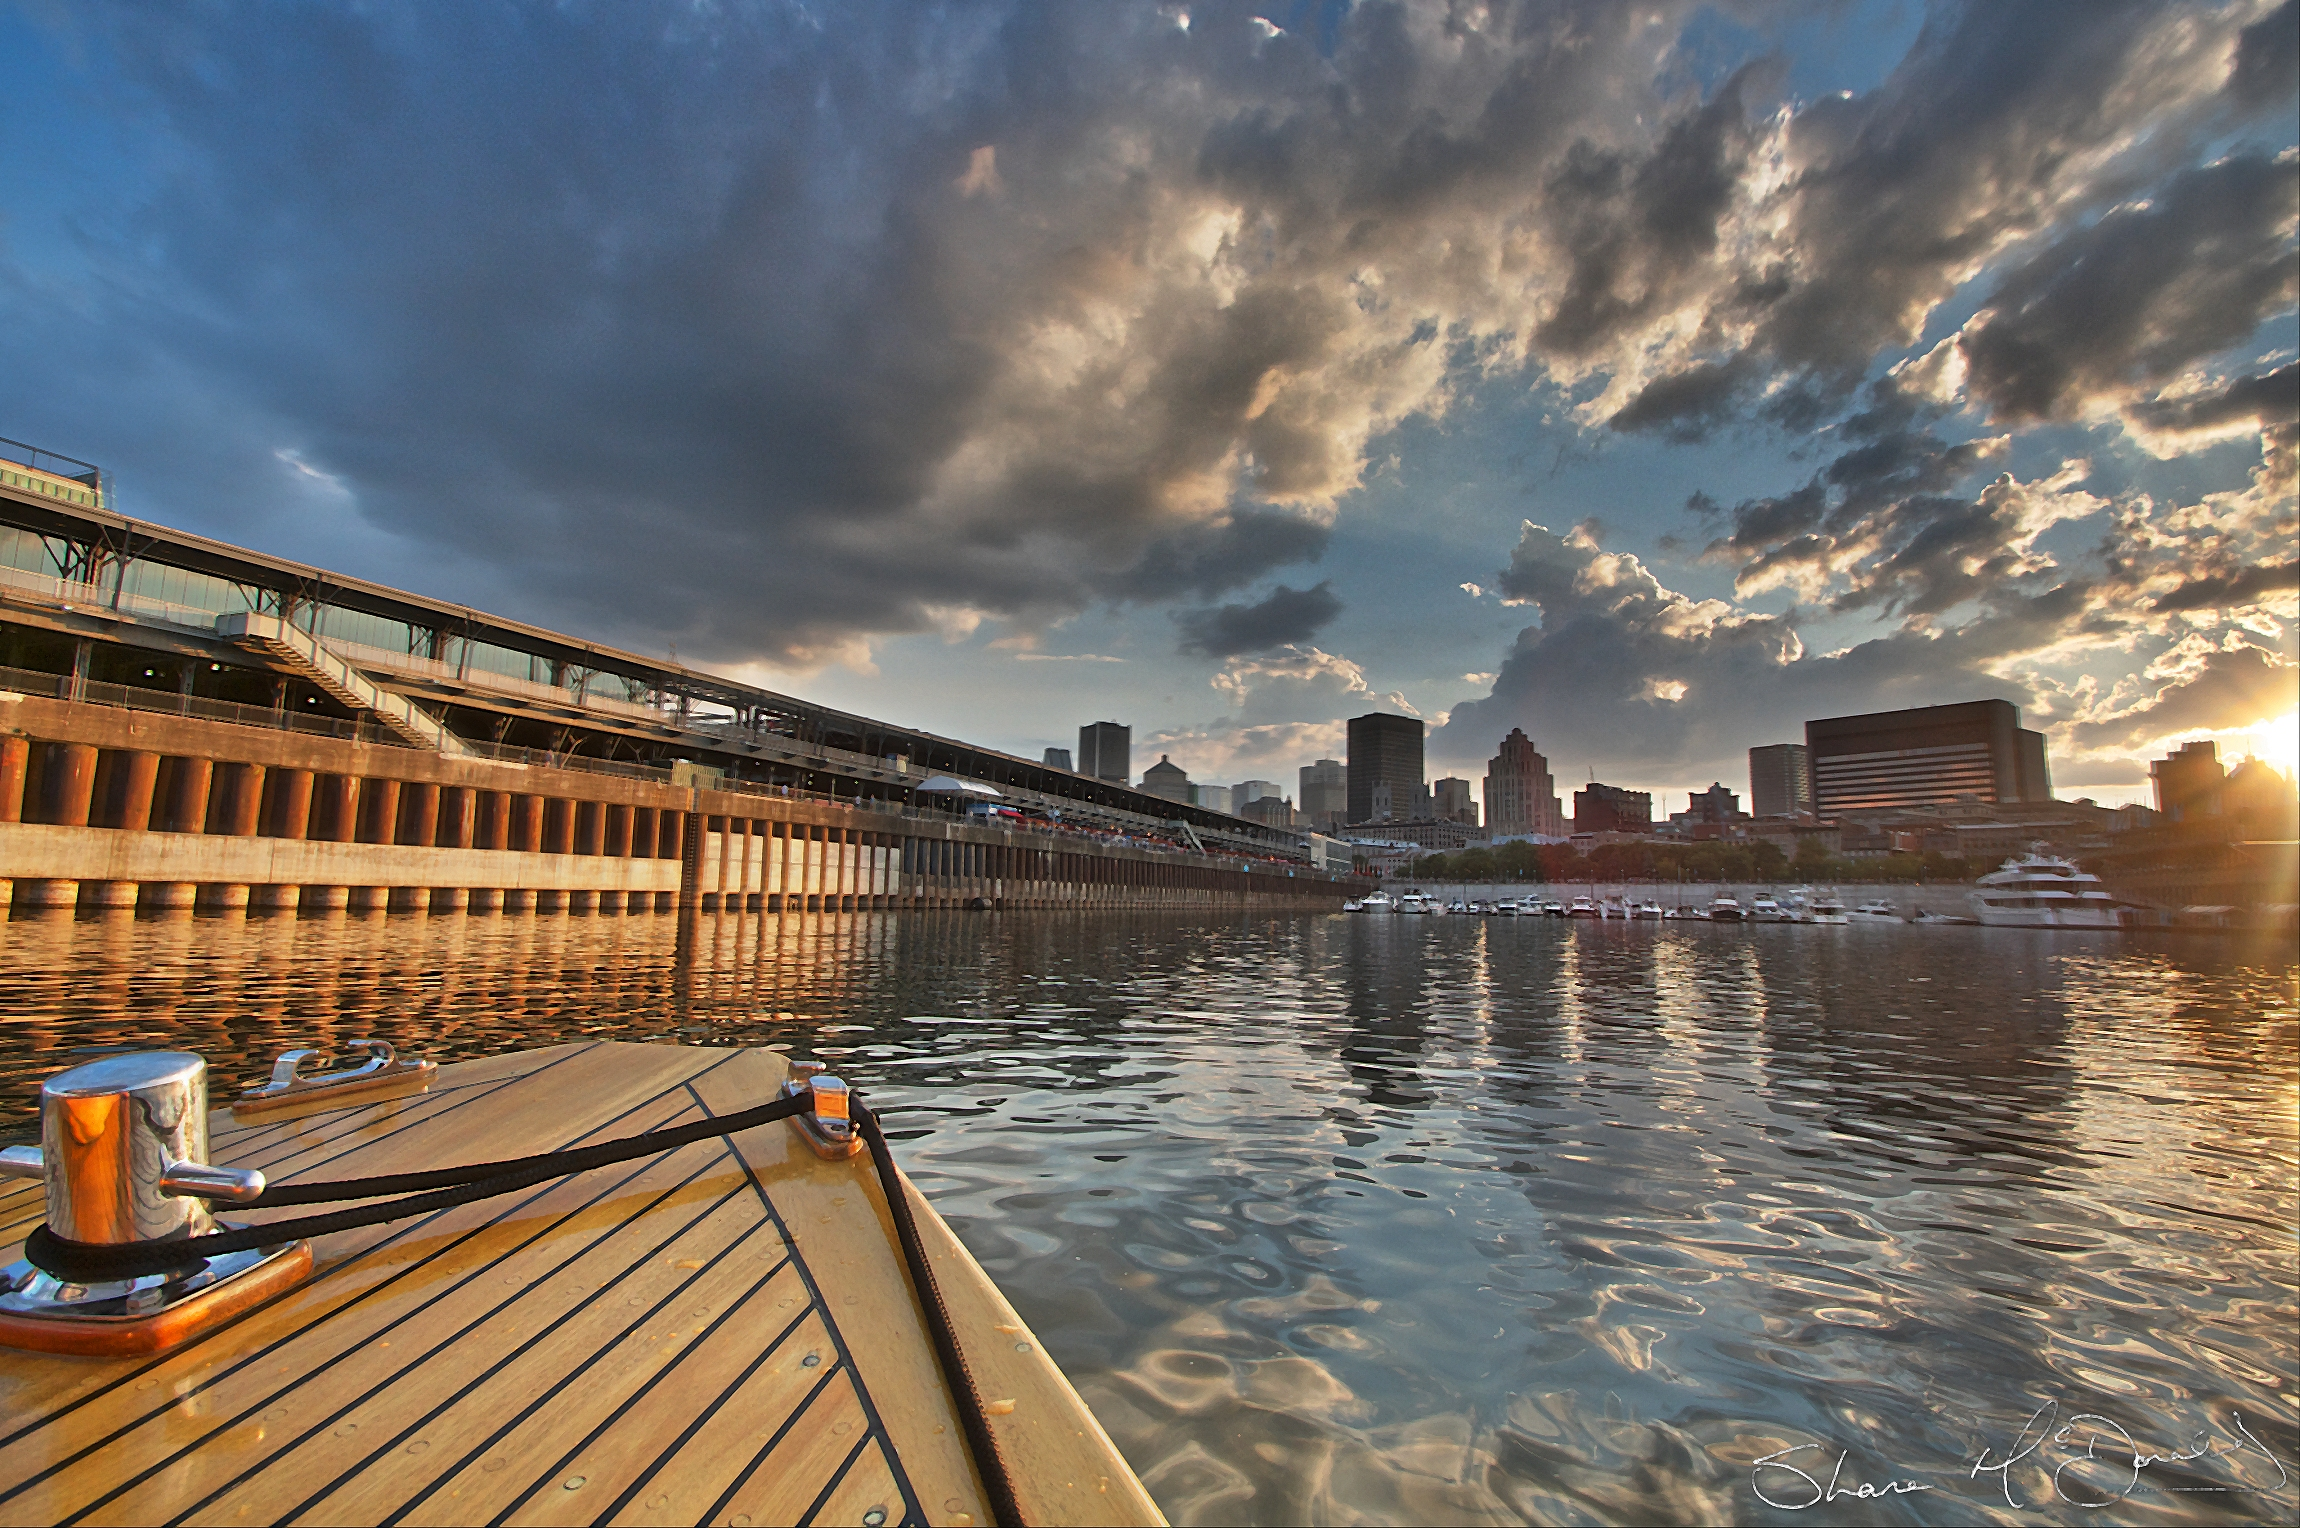 Montreal Harbour at Sunset – 31/Project 52